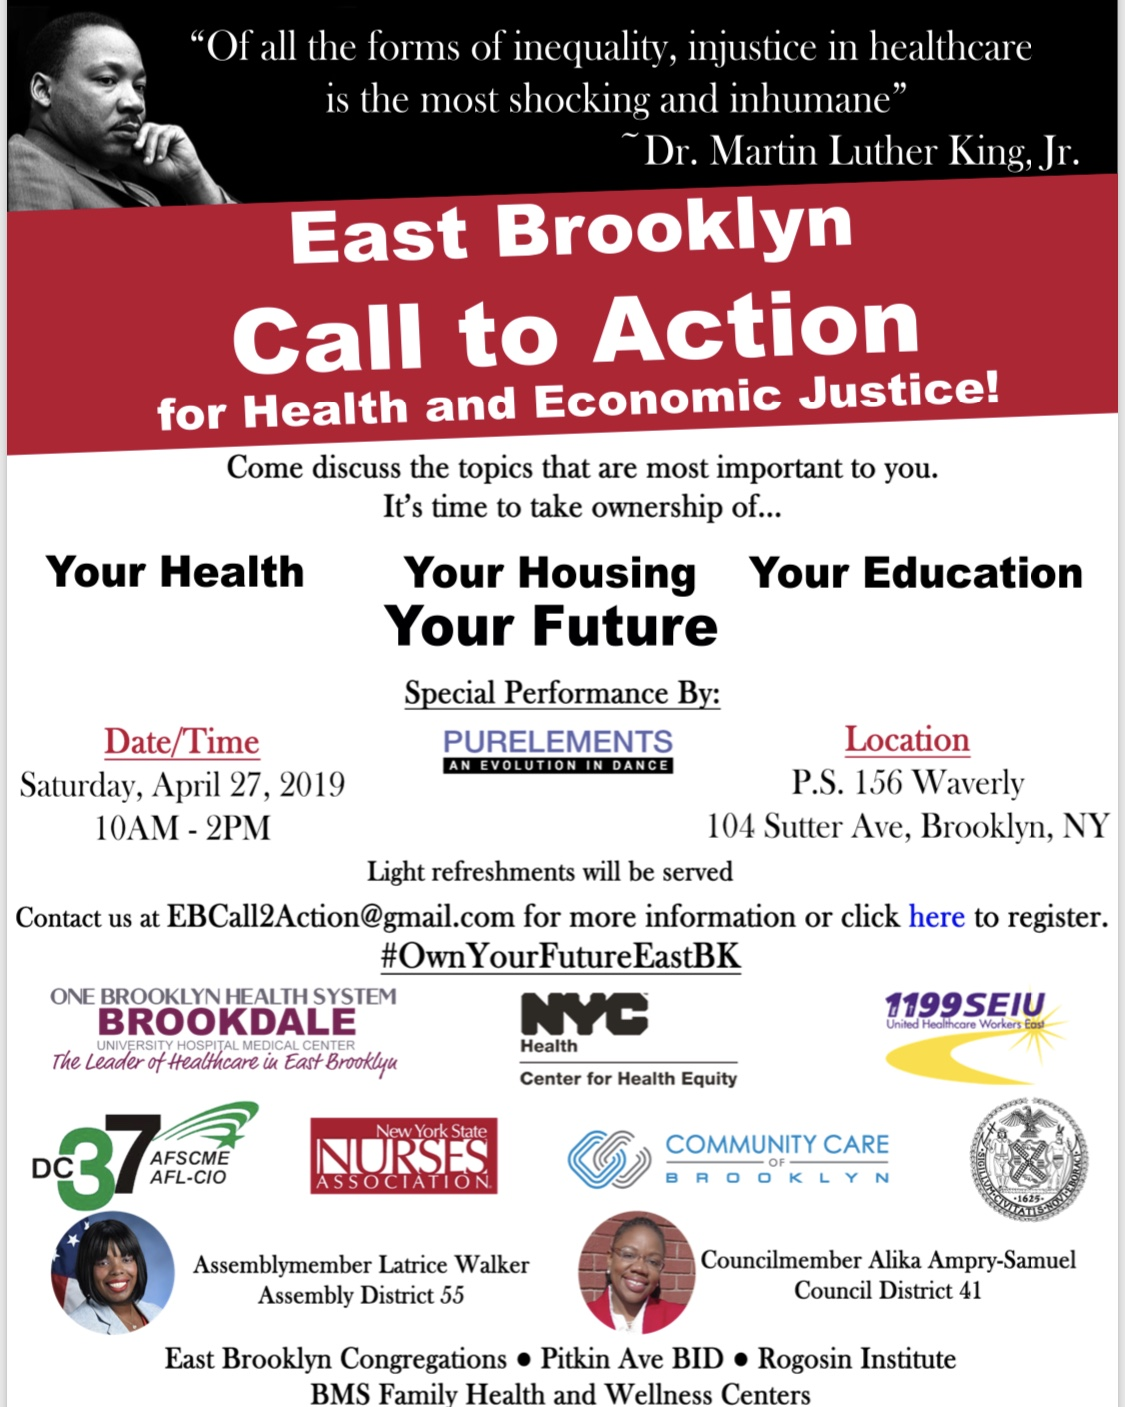 East Brooklyn Call To Action For Health & Economic Justice - BKLYNER